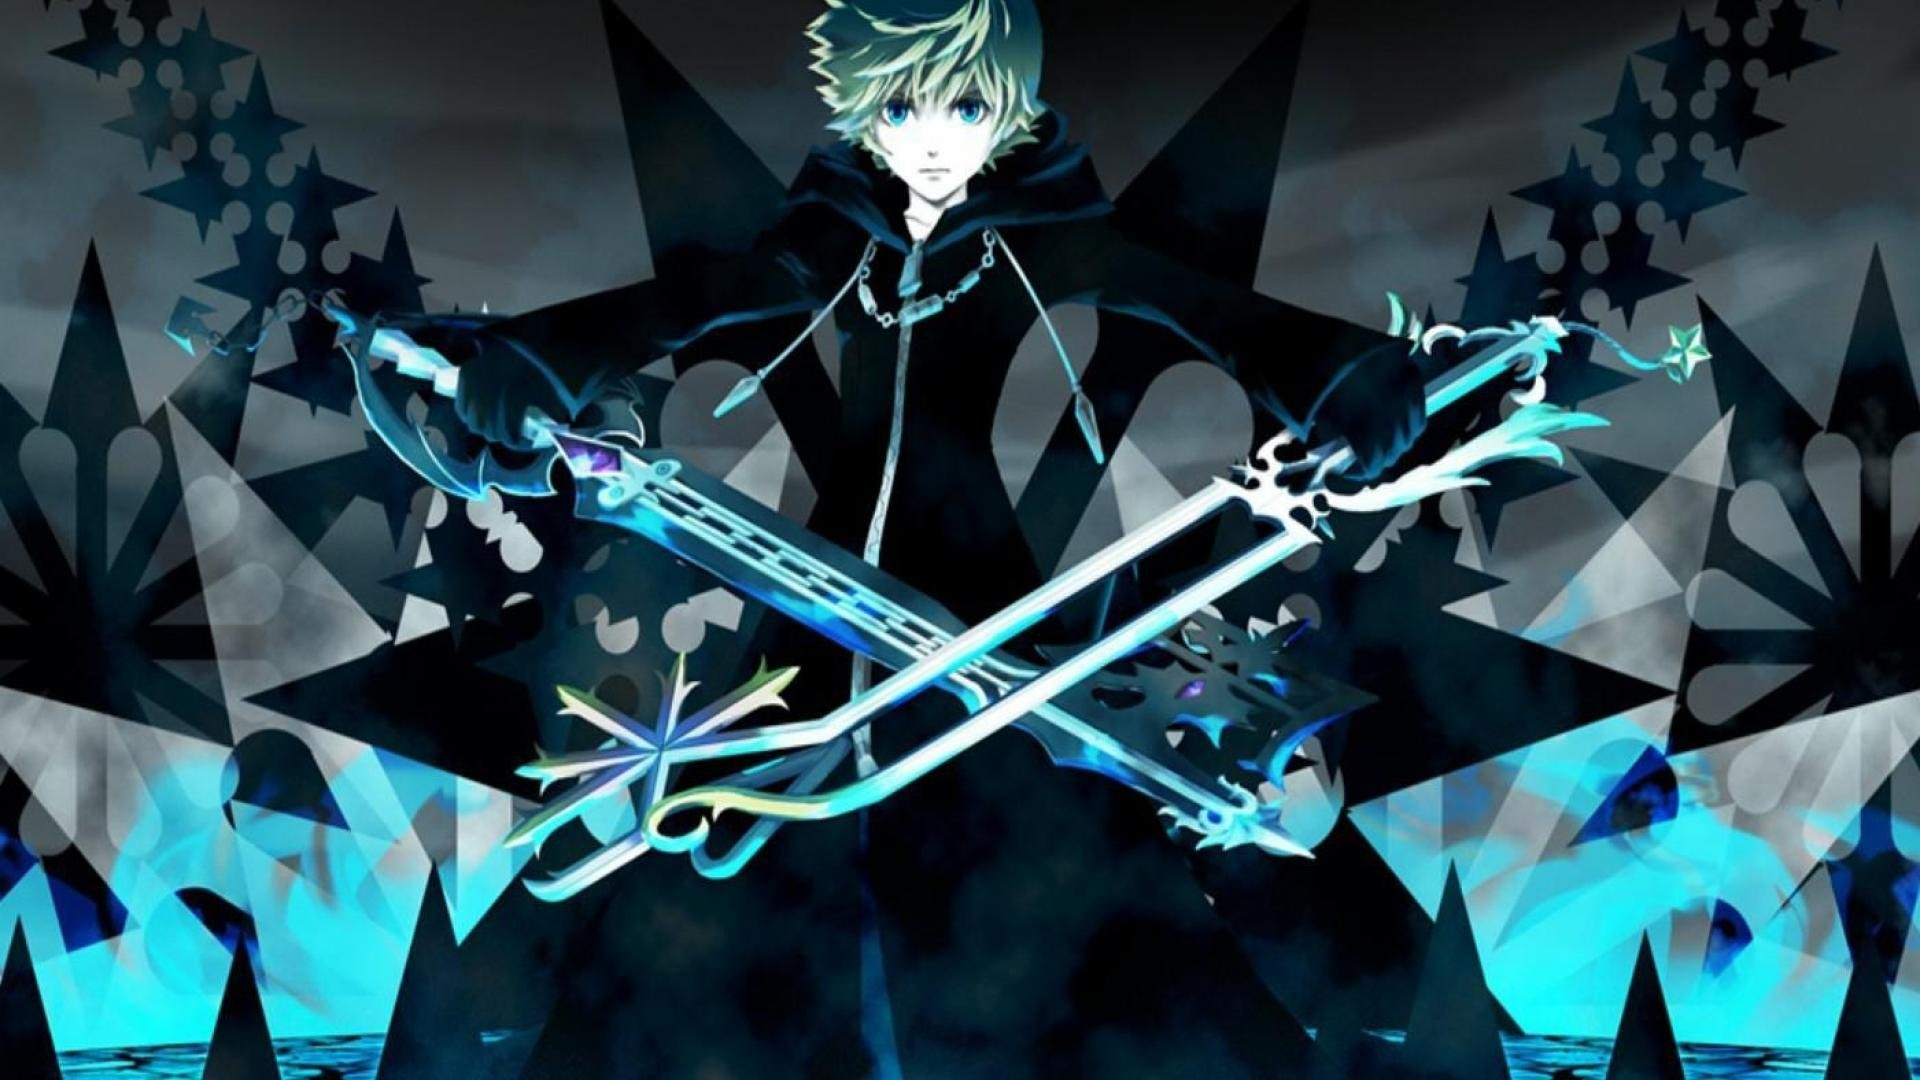 1920x1080 Kingdom Hearts Roxas Wallpapers Desktop Background